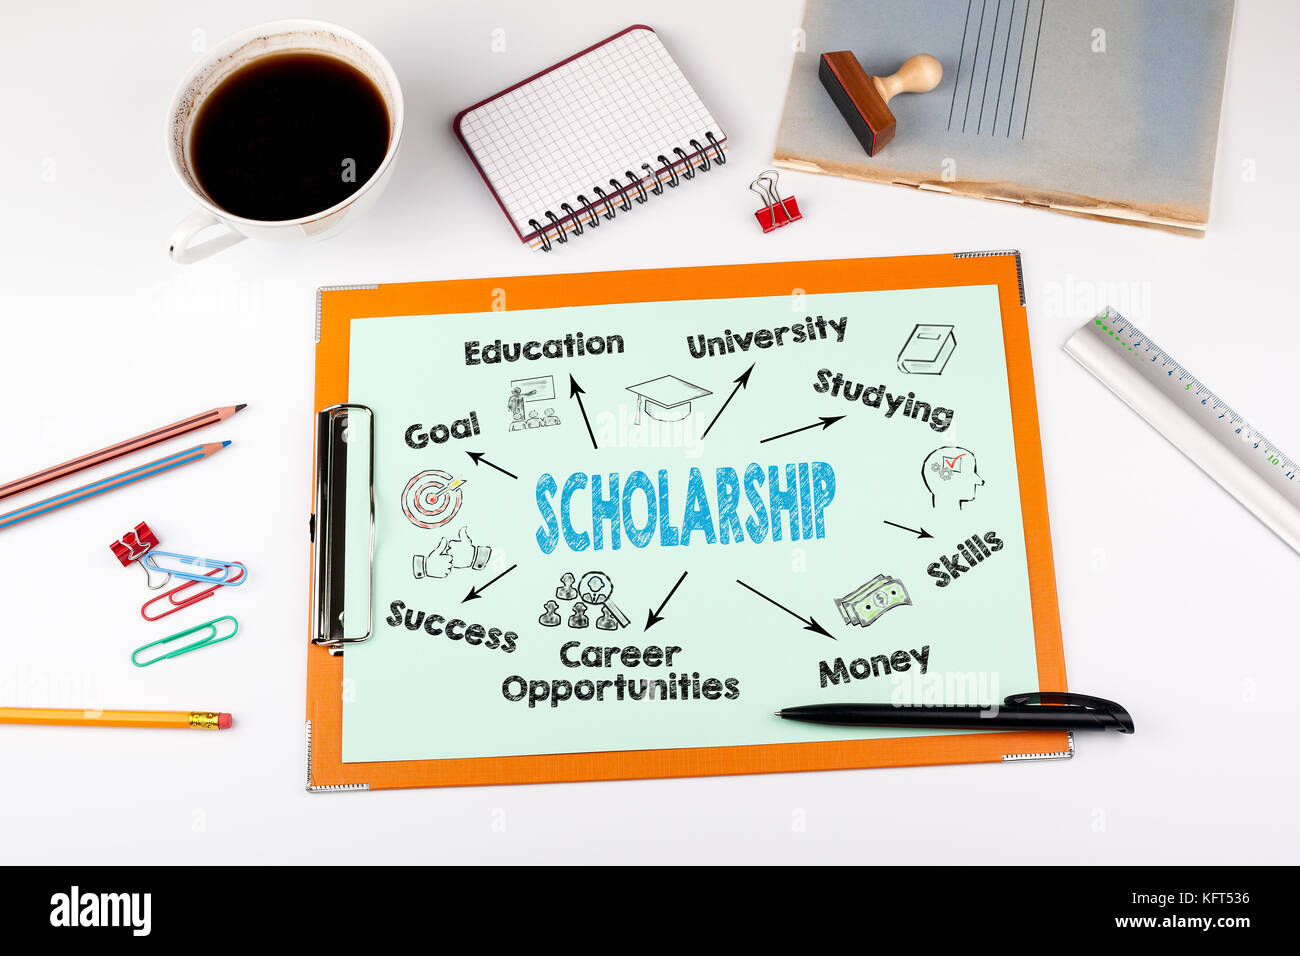 scholarship Concept, keywords and icons. Office desk with stationery - Stock Image